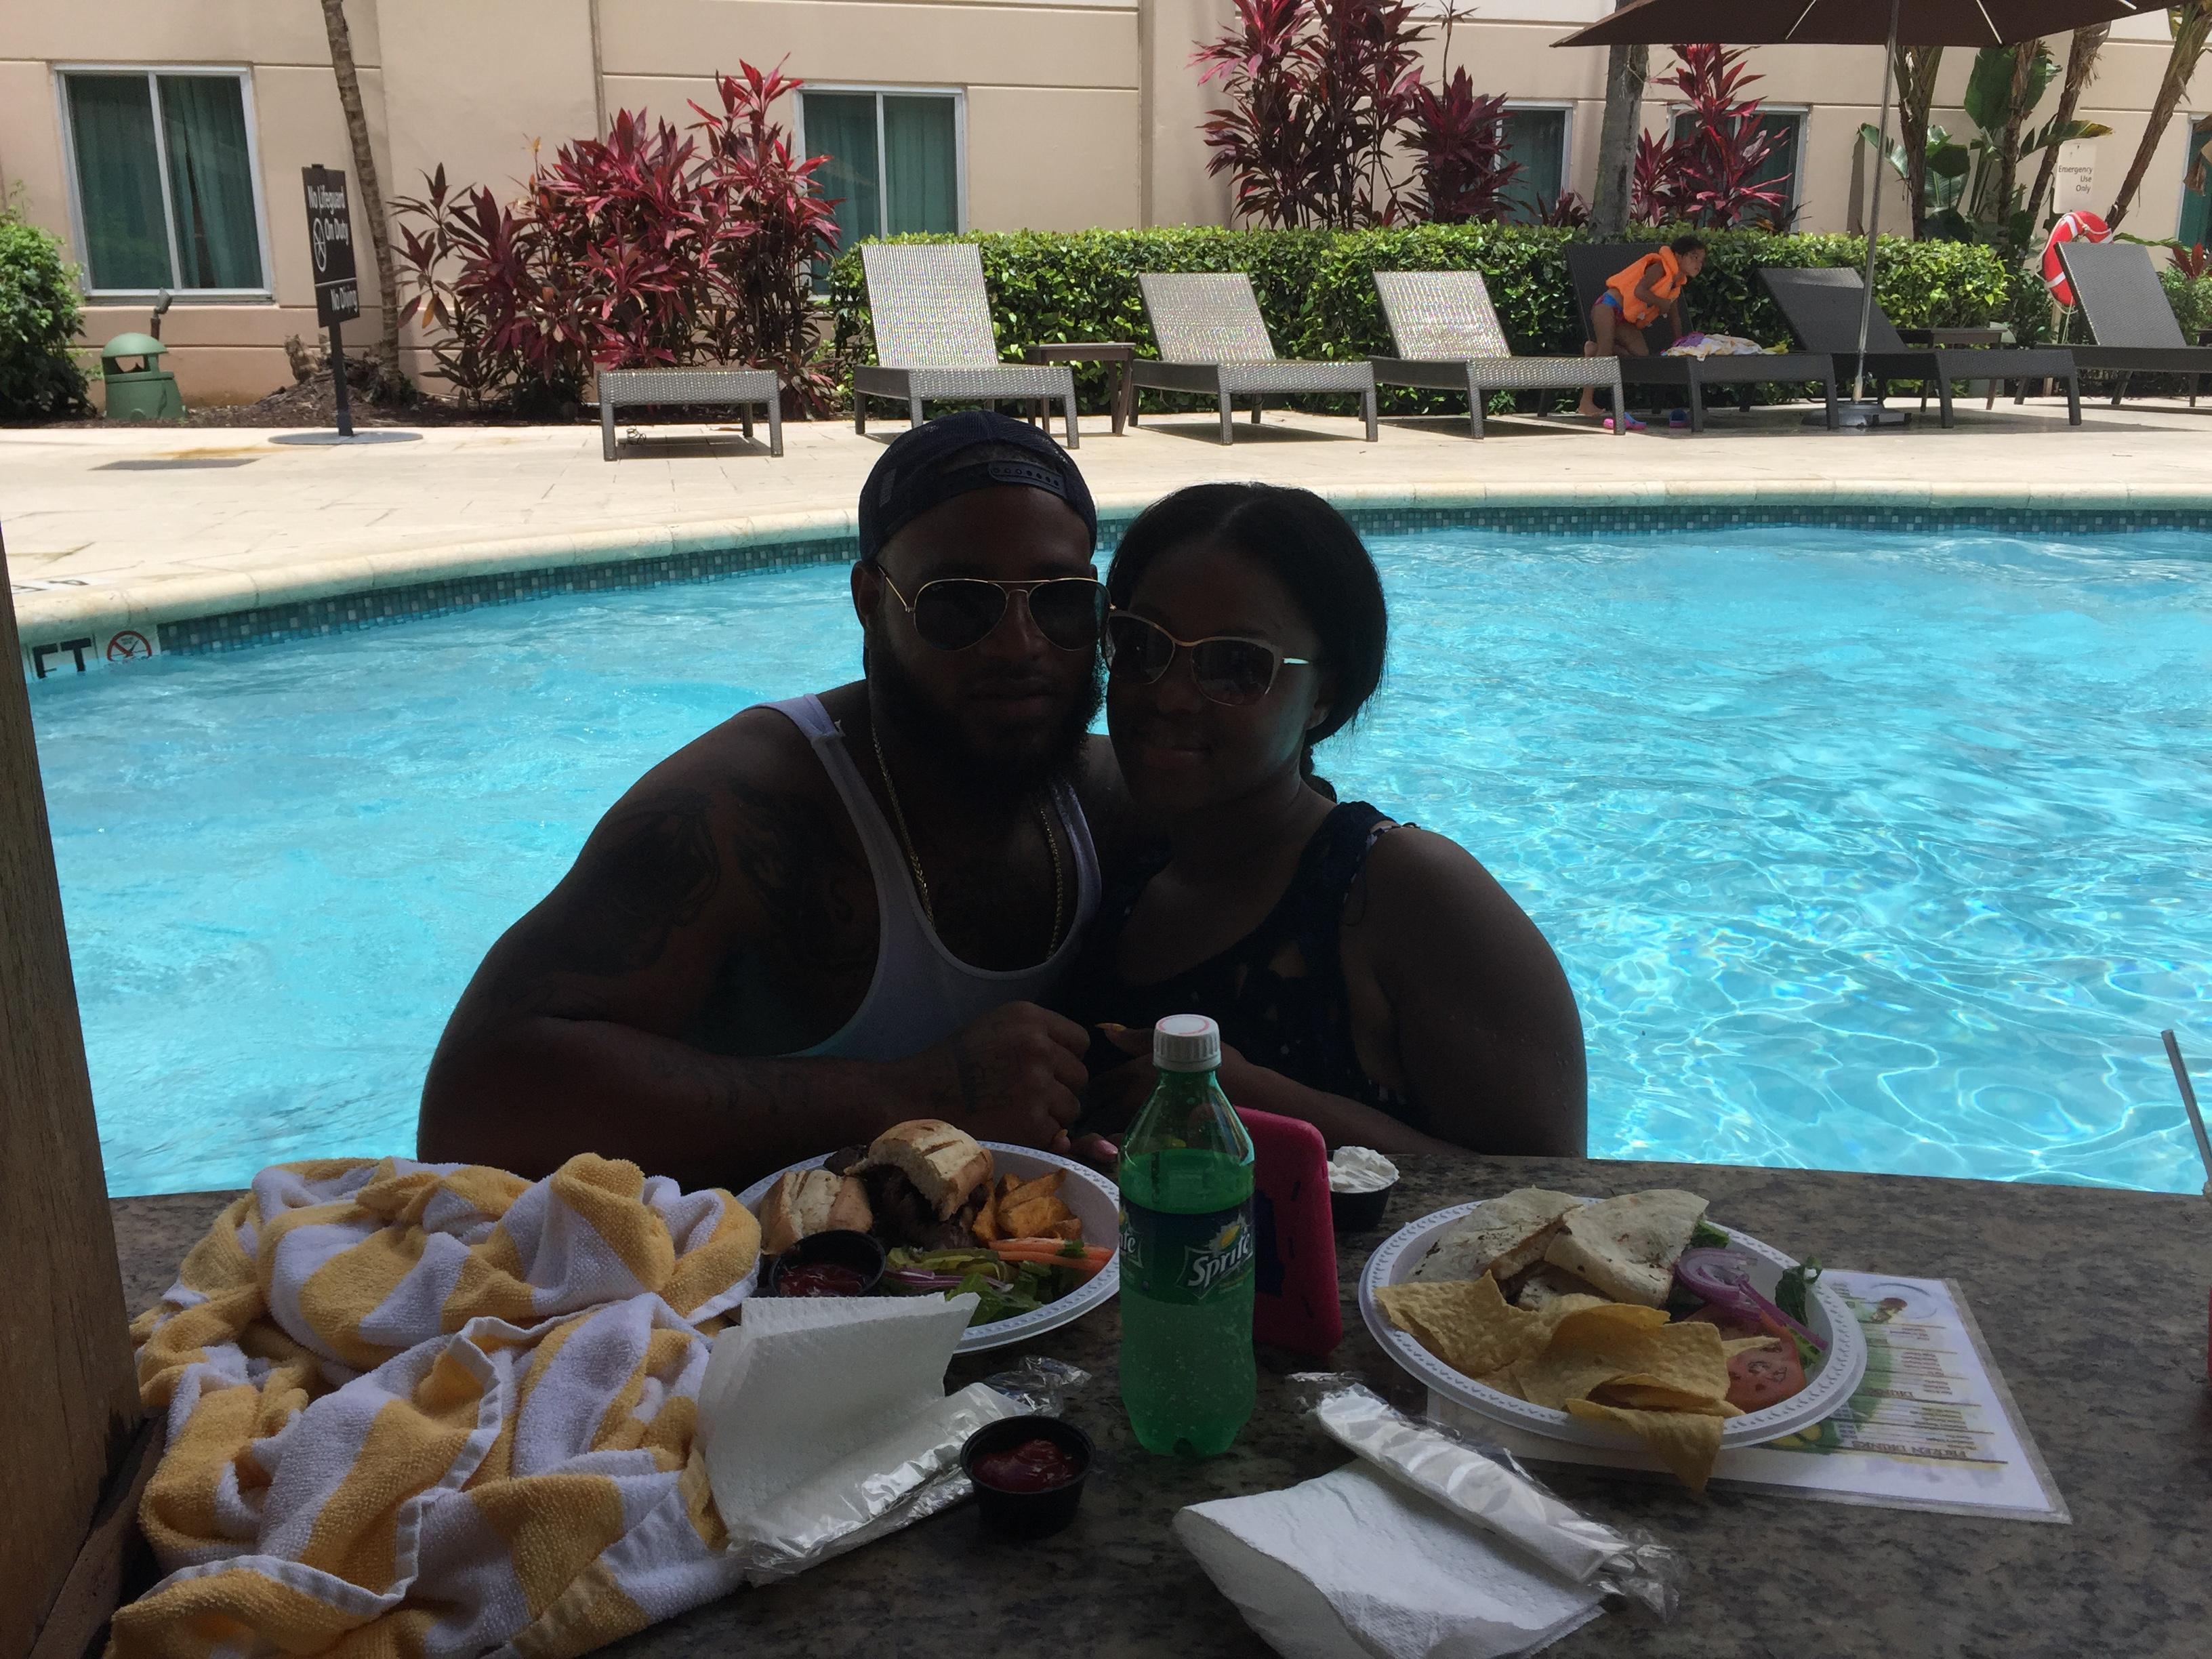 Lunch date in the pool